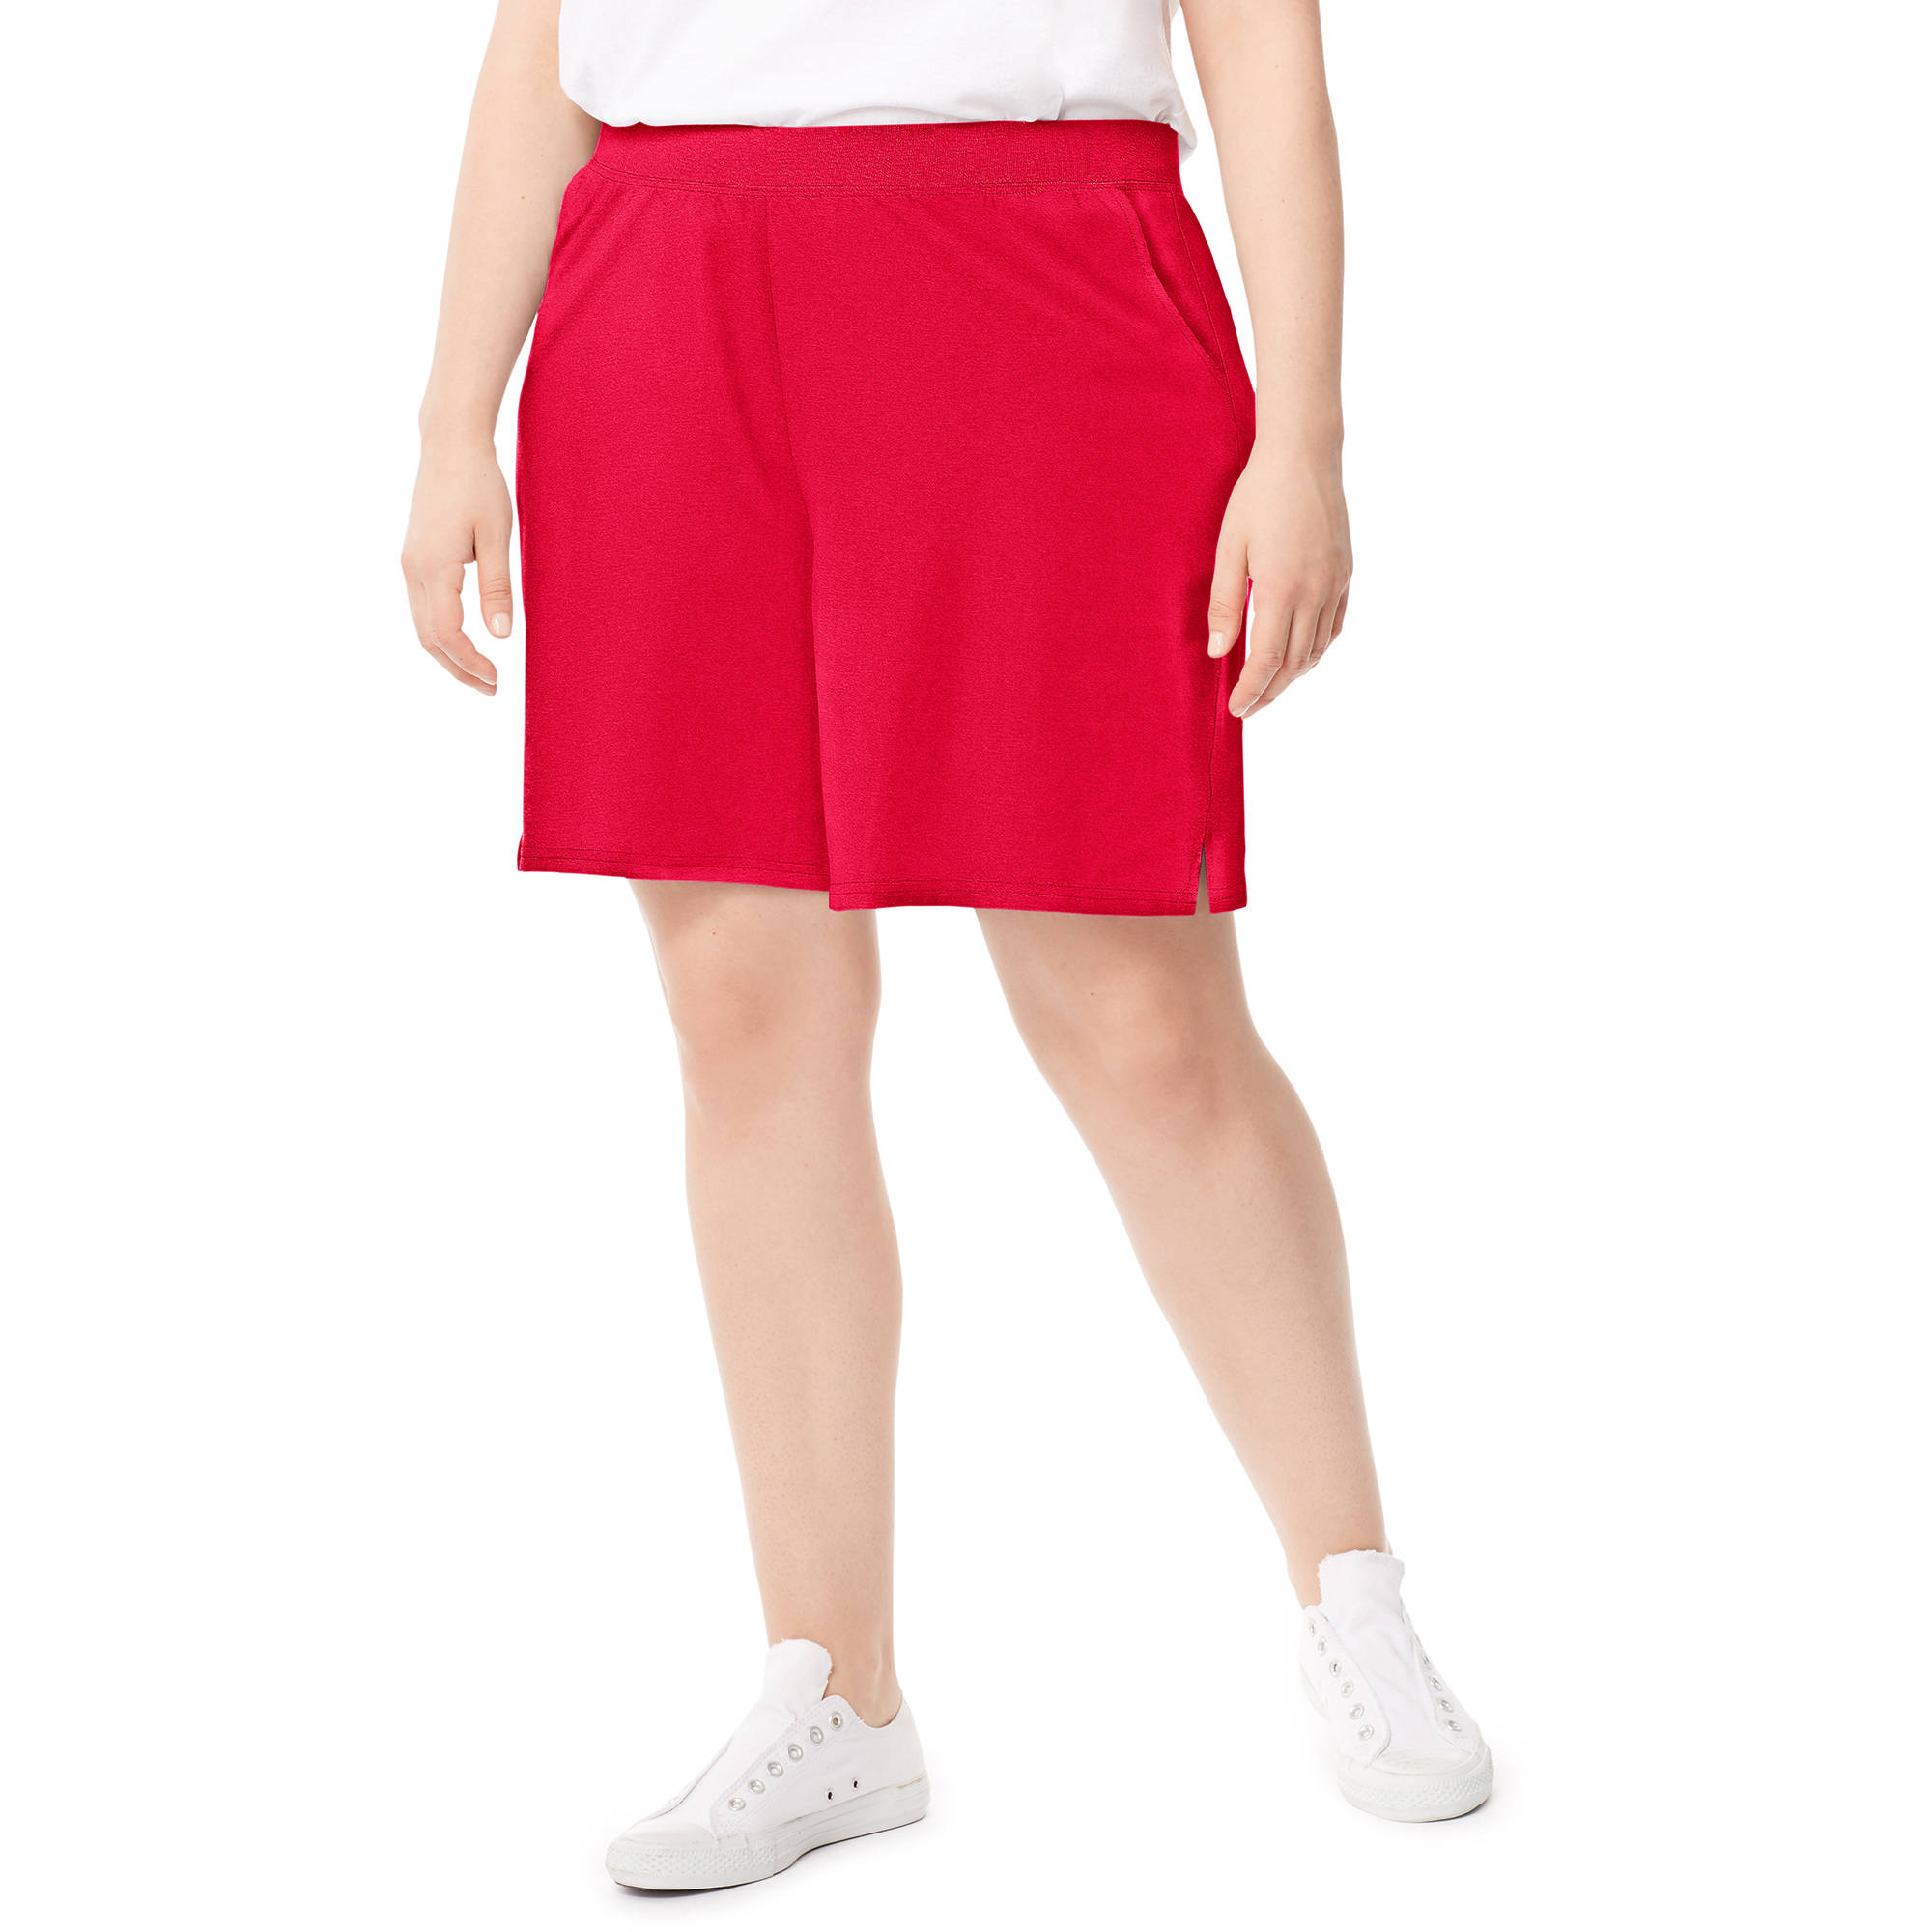 Just My Size by Hanes Women's Plus-Size Cotton Jersey Pocket Shorts